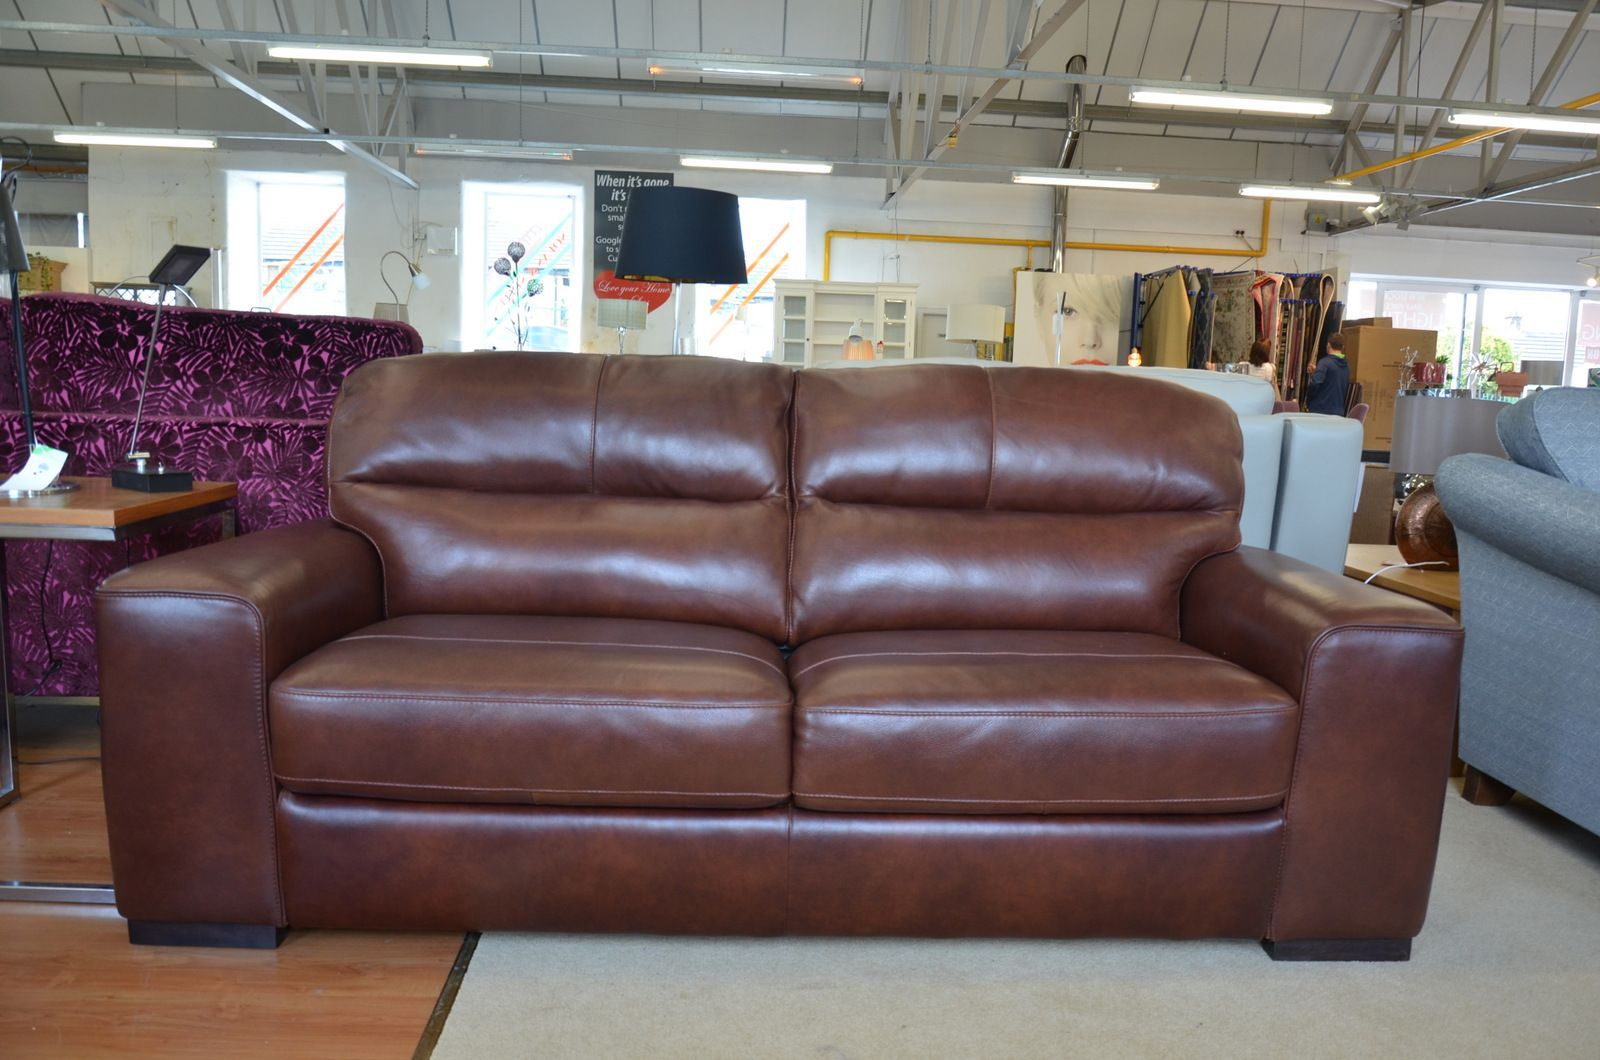 Amadeus 2 Large 3 Seater Sofas in Brown Italian Leather from Italy